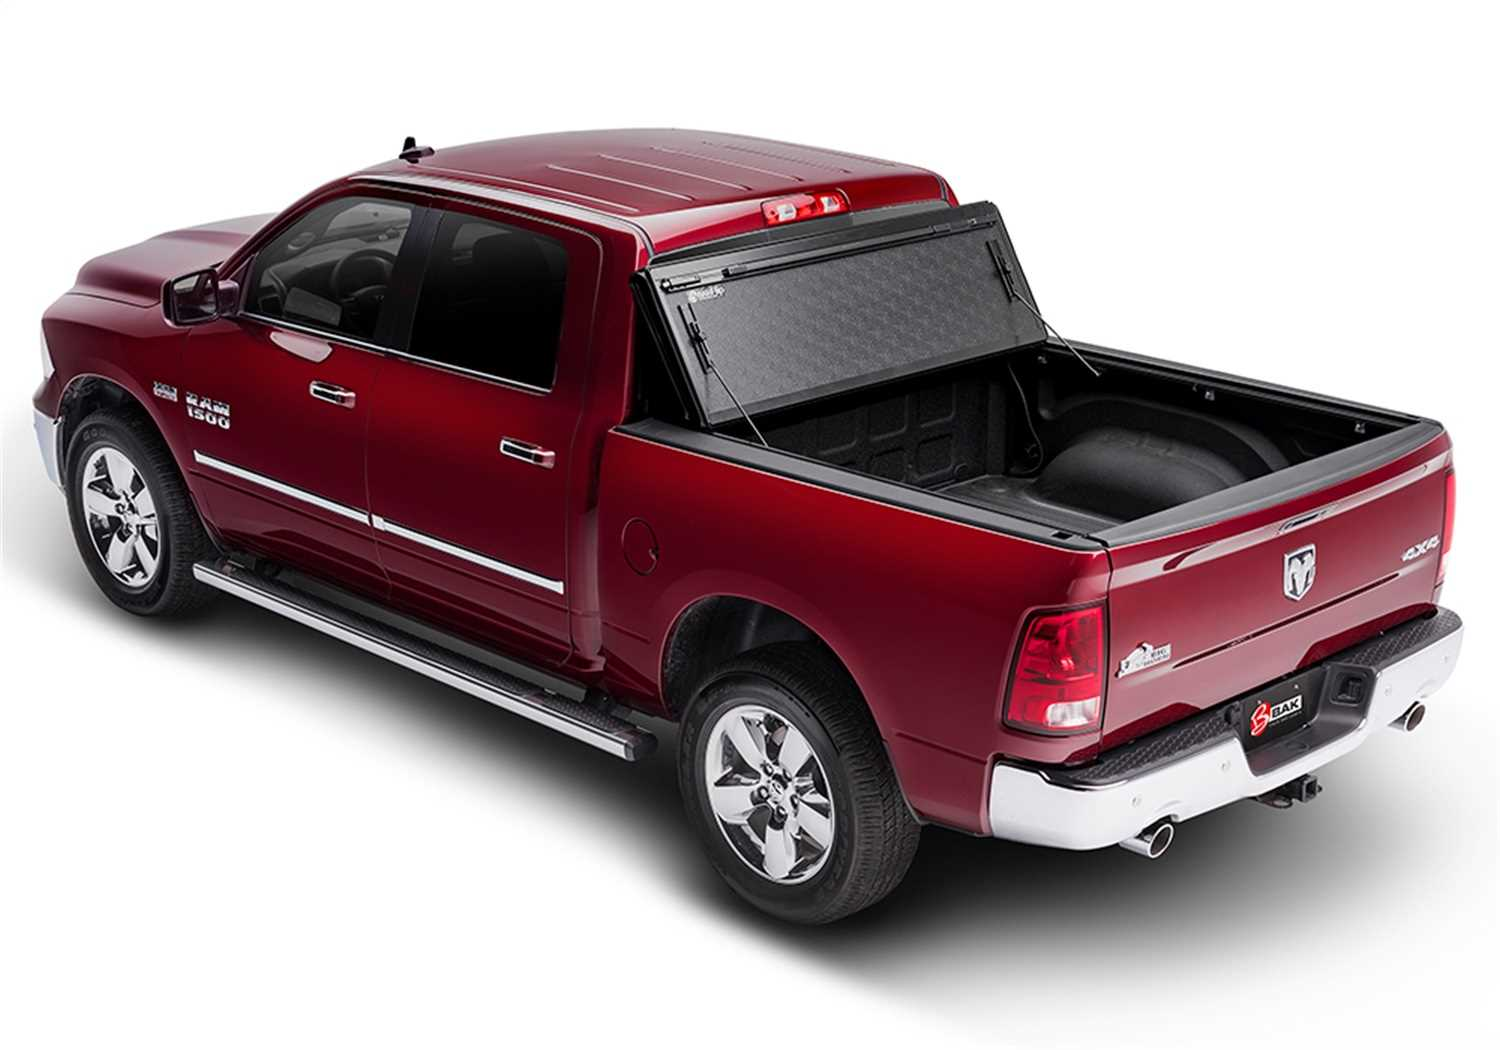 772503 Bak Industries BAKFlip F1 Hard Folding Truck Bed Cover